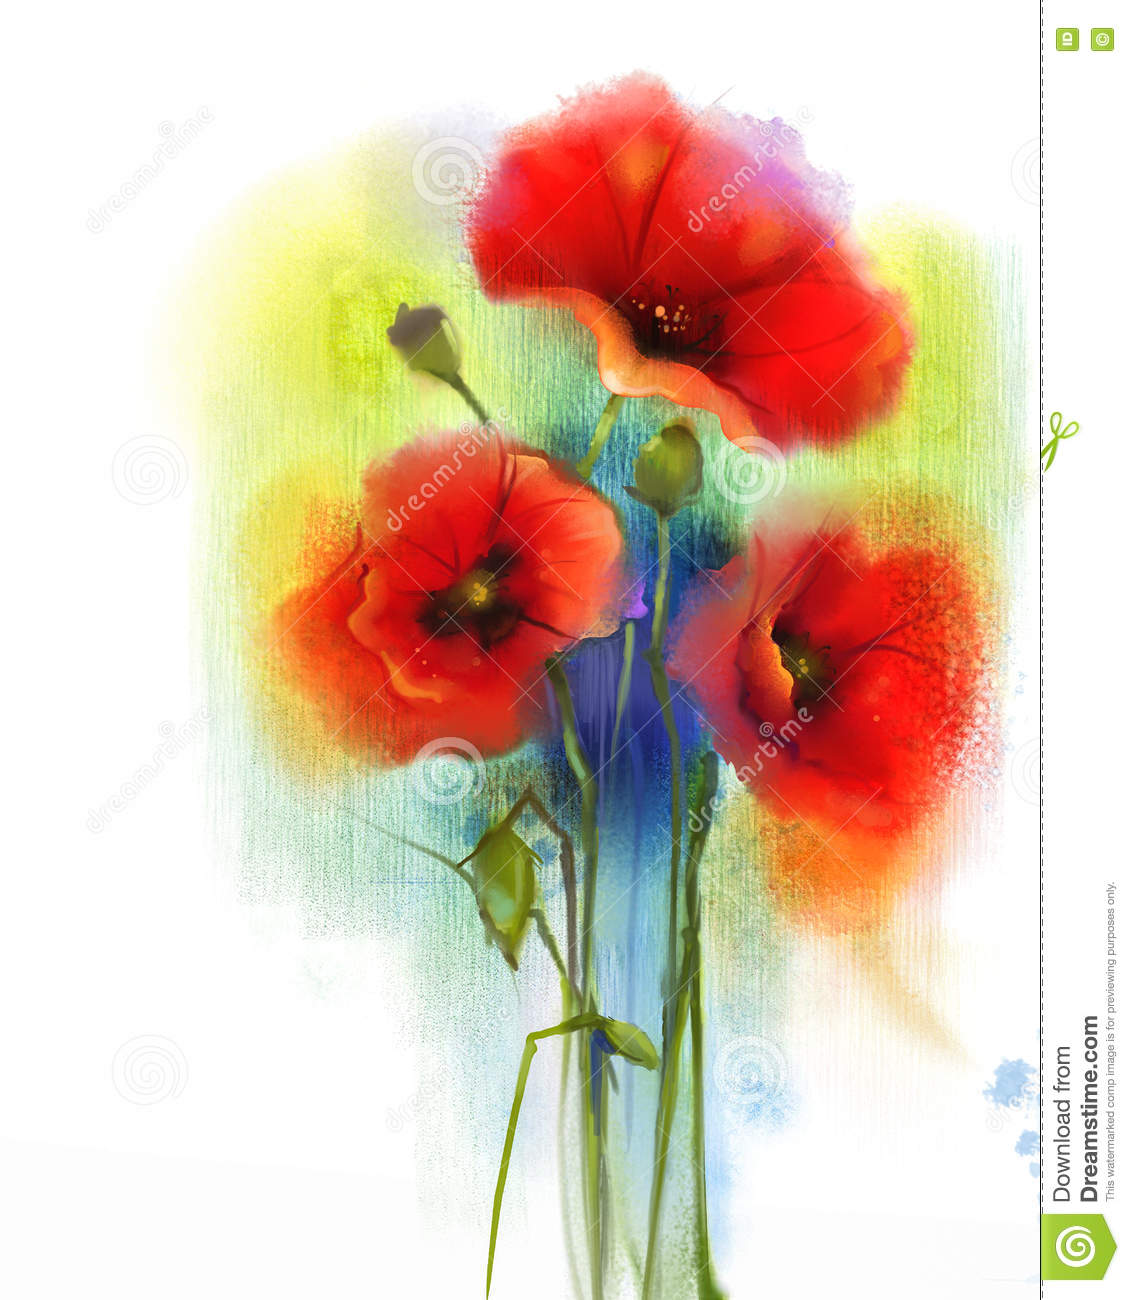 Watercolor Red Poppy Flower Painting Stock Illustration